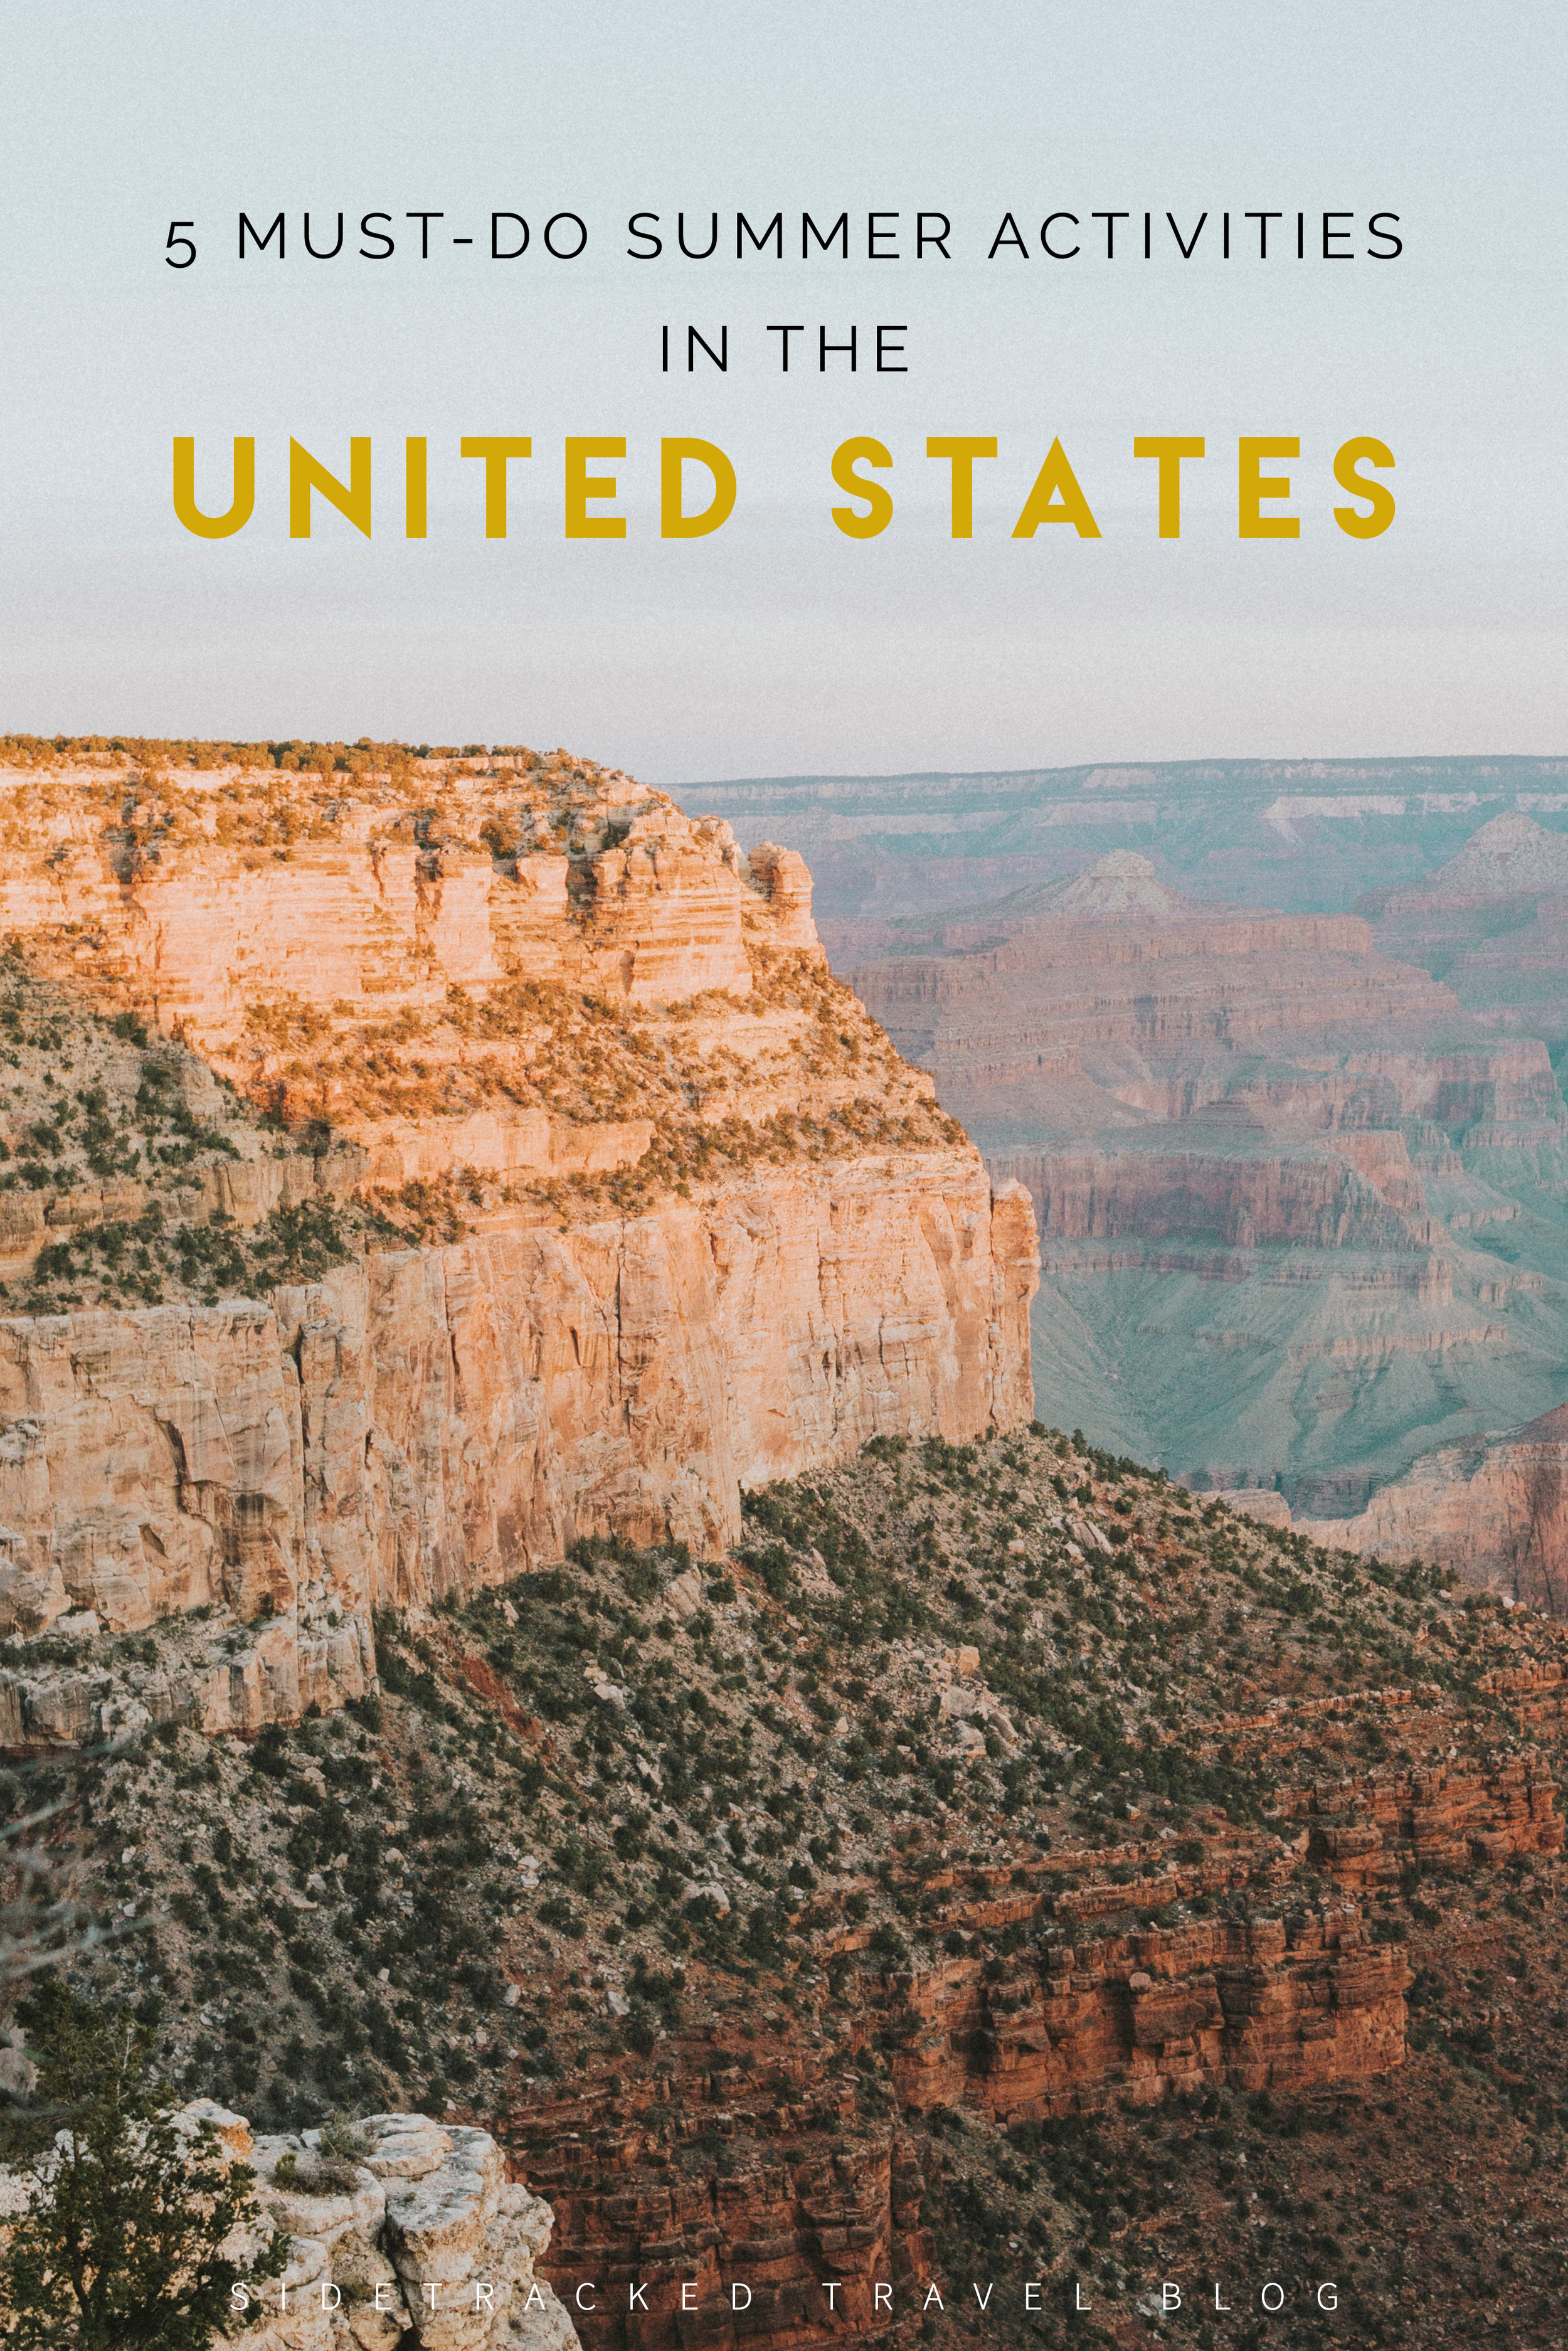 The United States is a vast and diverse country, and most travelers don't even come close to visiting even half of all the states. There is so much to explore! Below you'll find five recommendations for fun activities to do this summer in various destinations across the U.S.A.